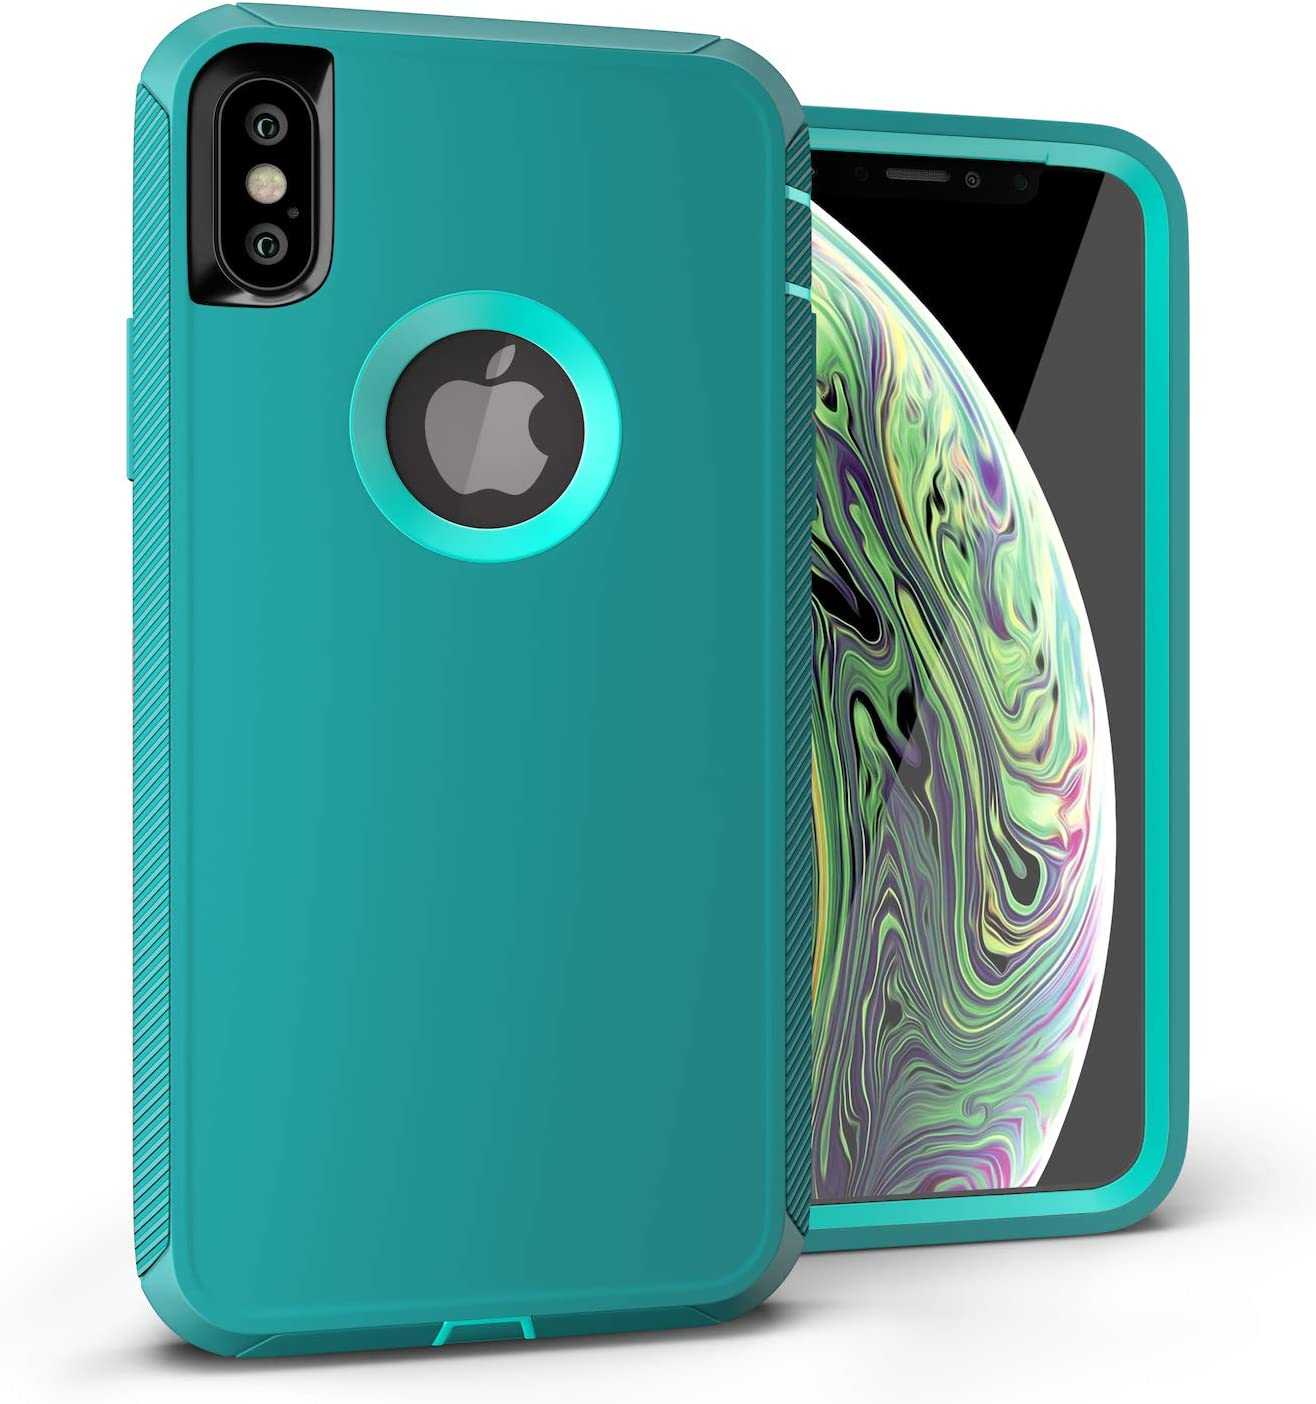 iPhone Xs Case, Viero Defender iPhone X Case Heavy Duty Rugged Impact Resistant Full Protective Armor Military Protection Belt Clip Holster Kickstand Protector Case Cover for iPhone 10- Teal/Teal